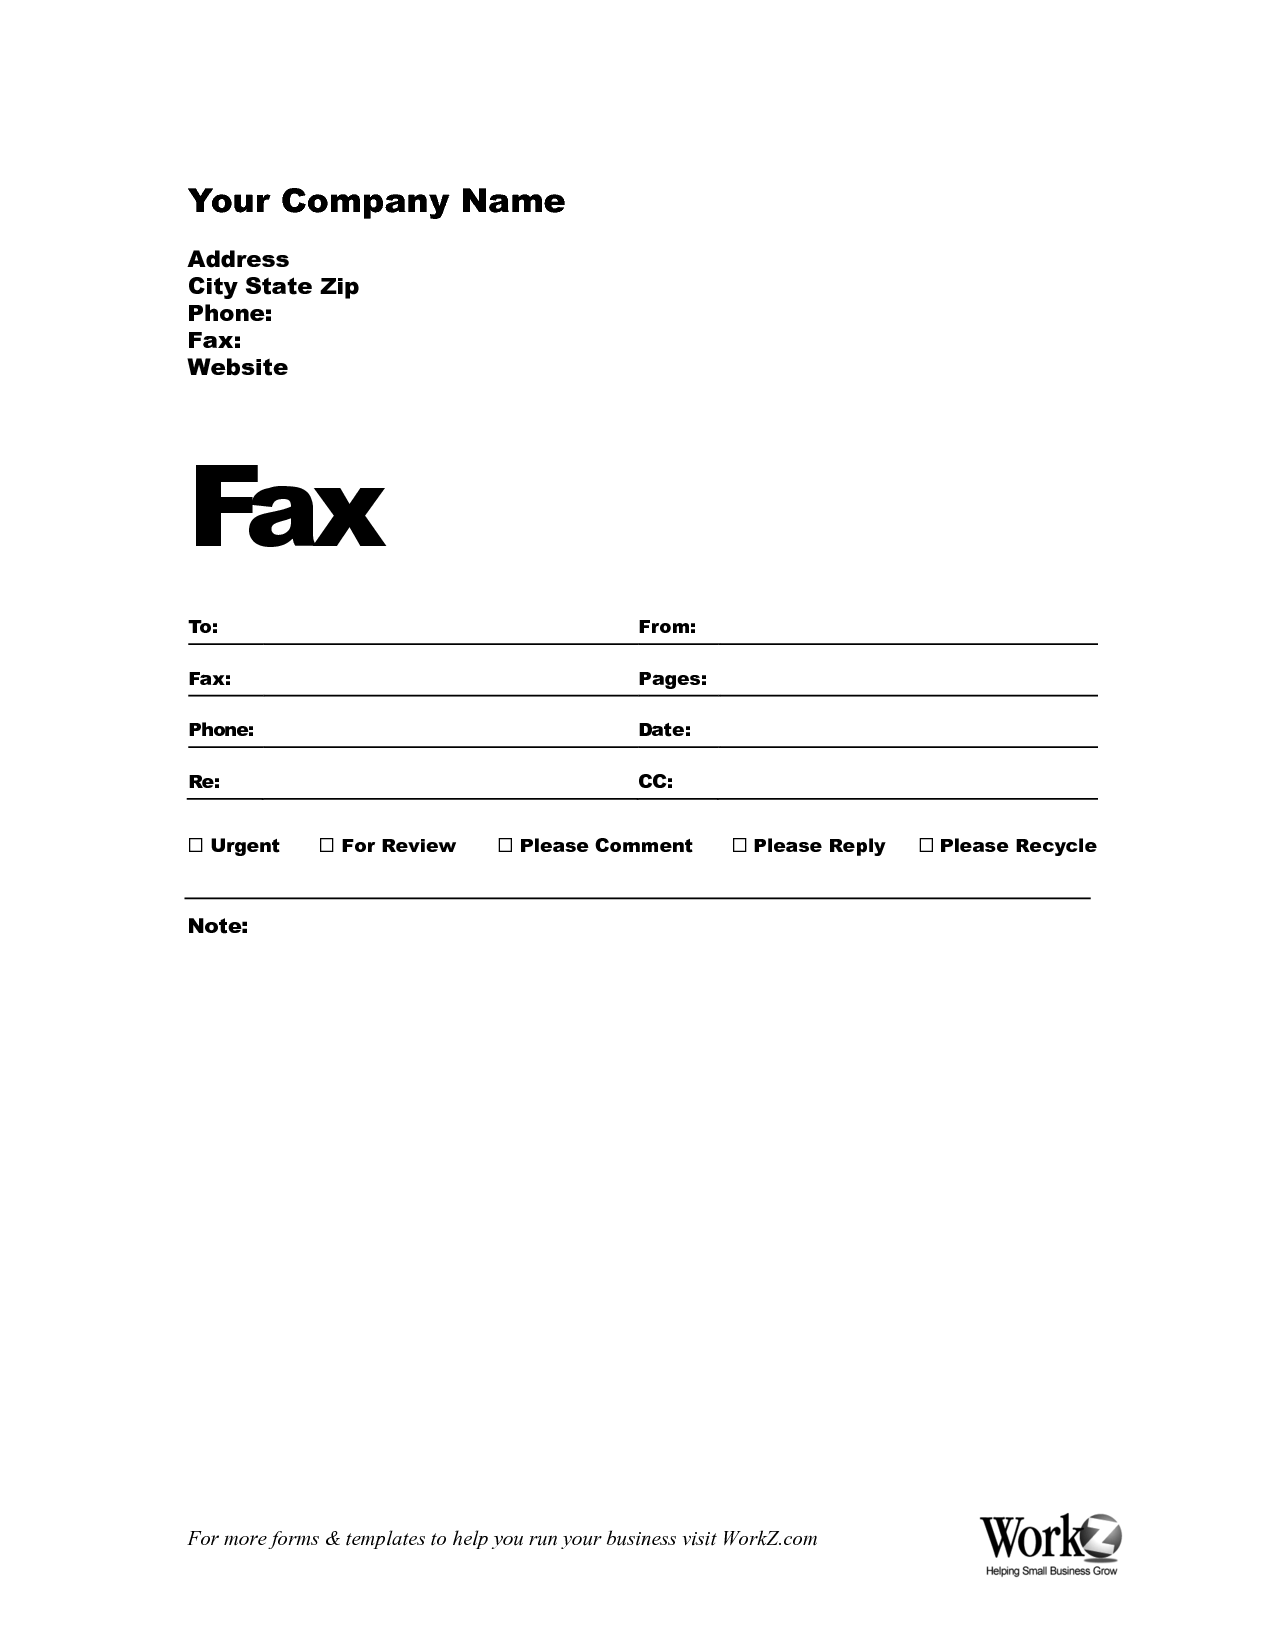 Bfaxb bcoverb bsheetb sample btemplateb images fax word template professional cover sheet free pdf letter resume best free home design idea inspiration spiritdancerdesigns Choice Image